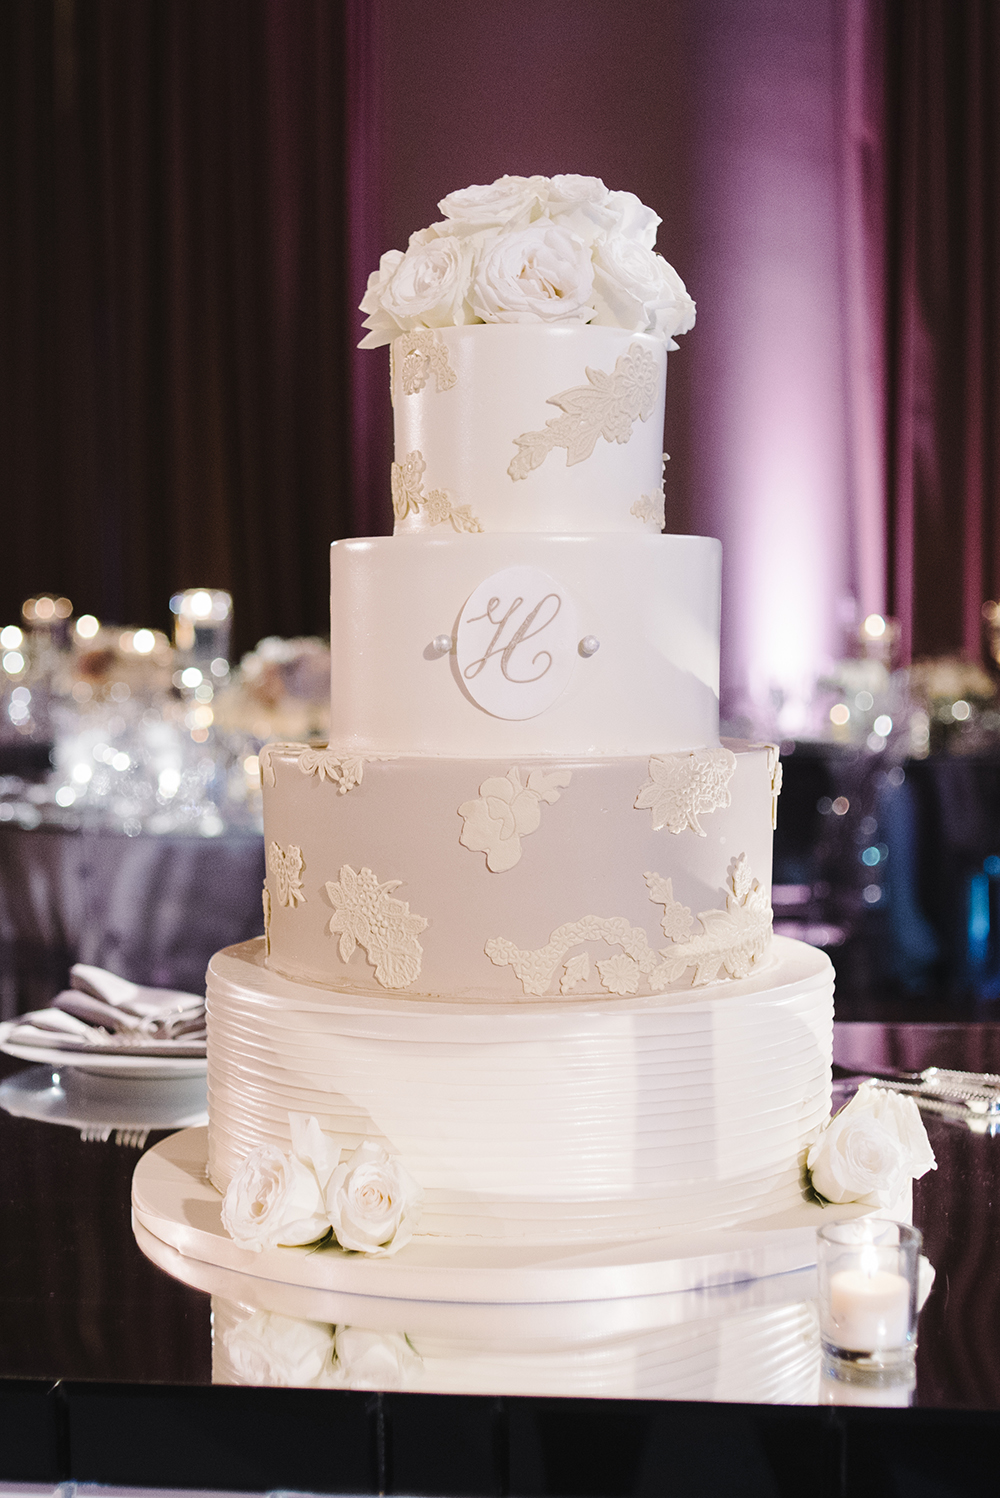 5 tiered white wedding cake with lace